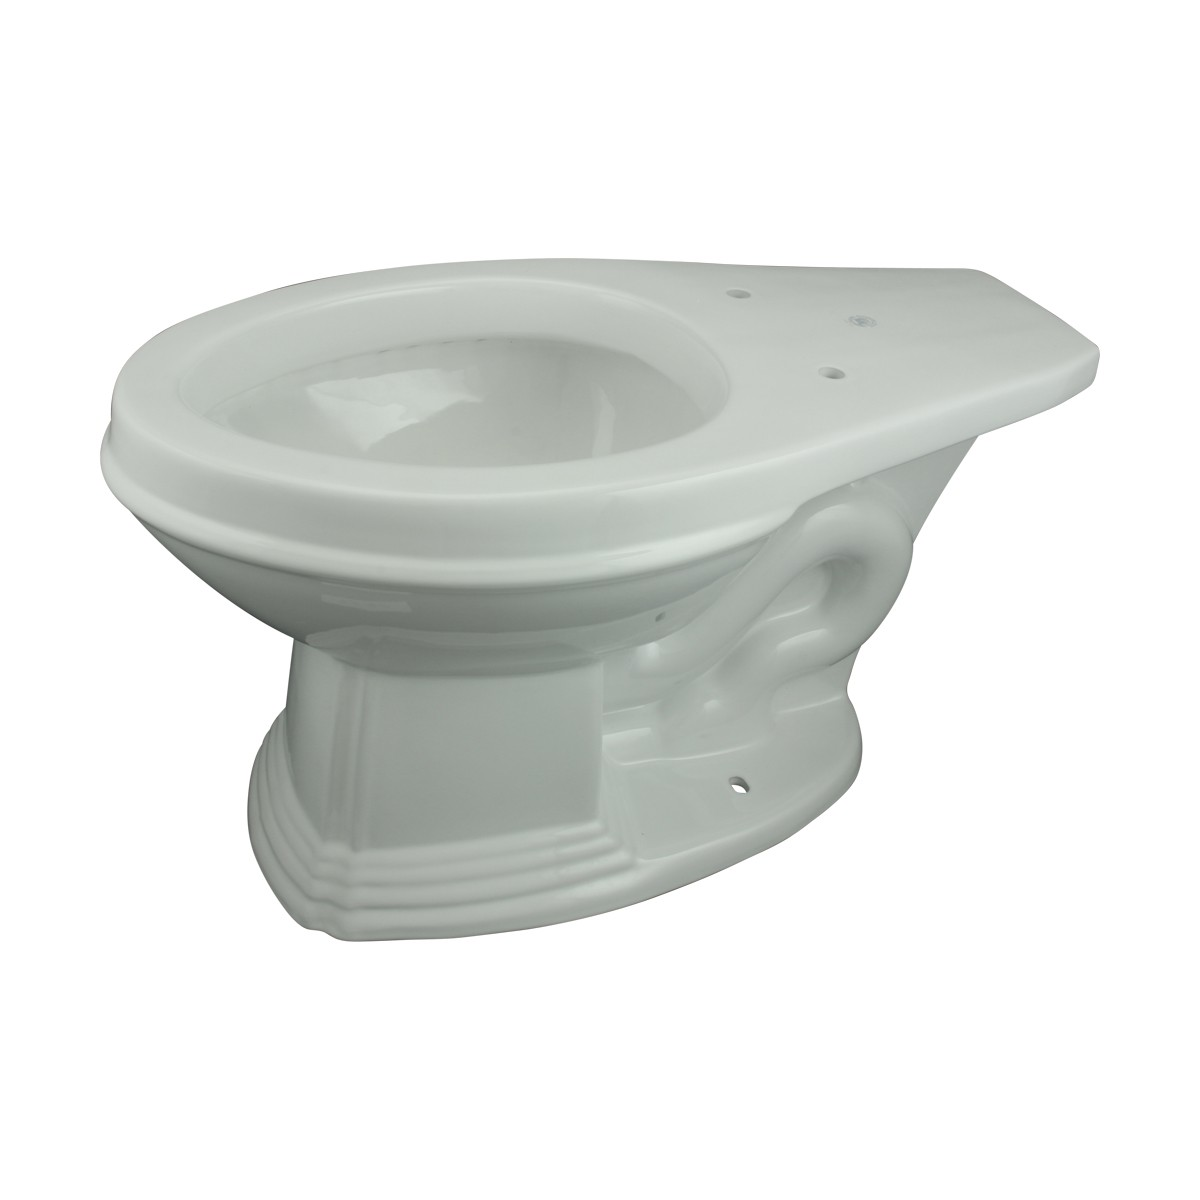 High Tank Pull Chain Toilets Elongated Bowl High Tank Toilet Old Fashioned Toilet